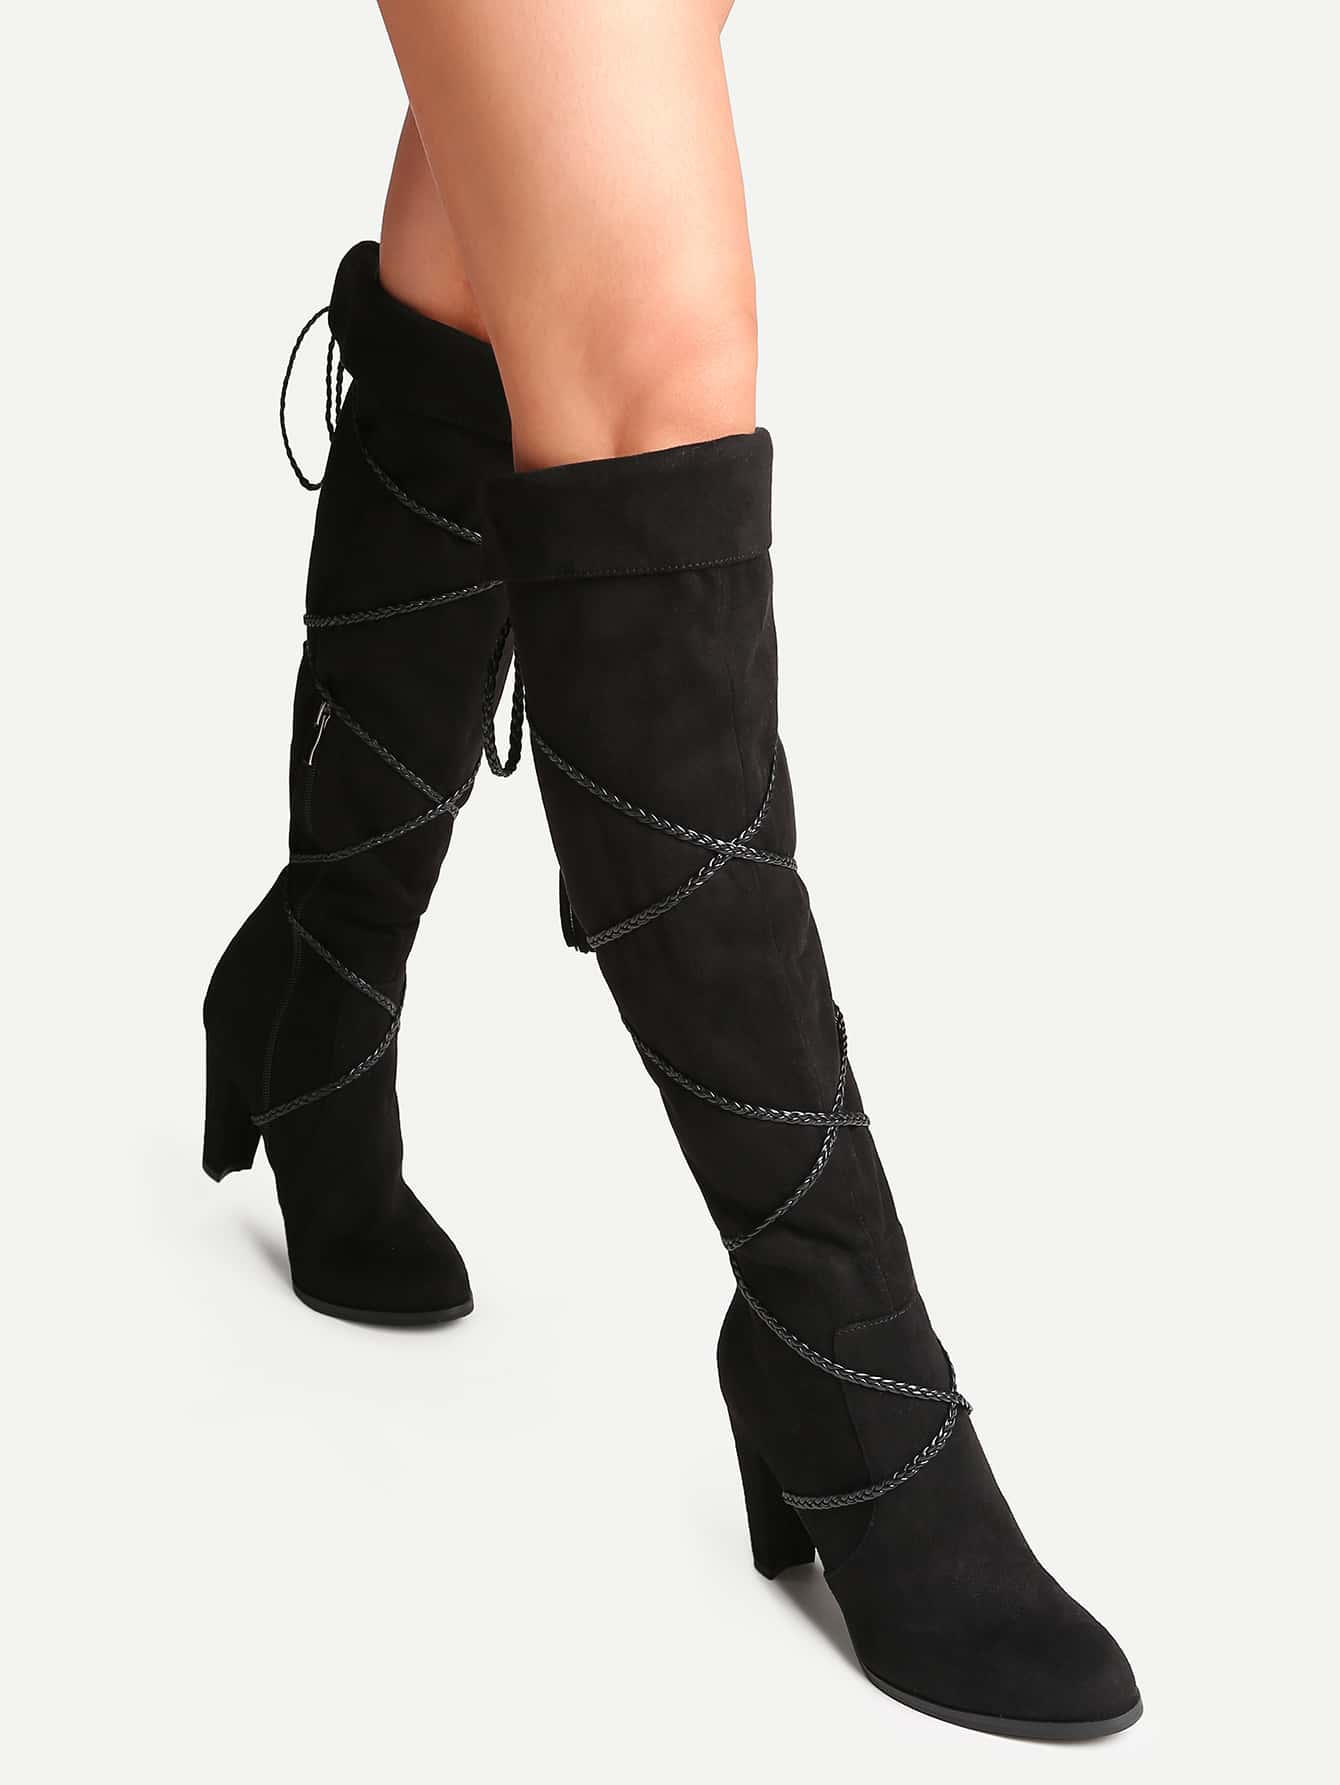 Black Point Toe Tie Back Fold Over Boots shoes16100704